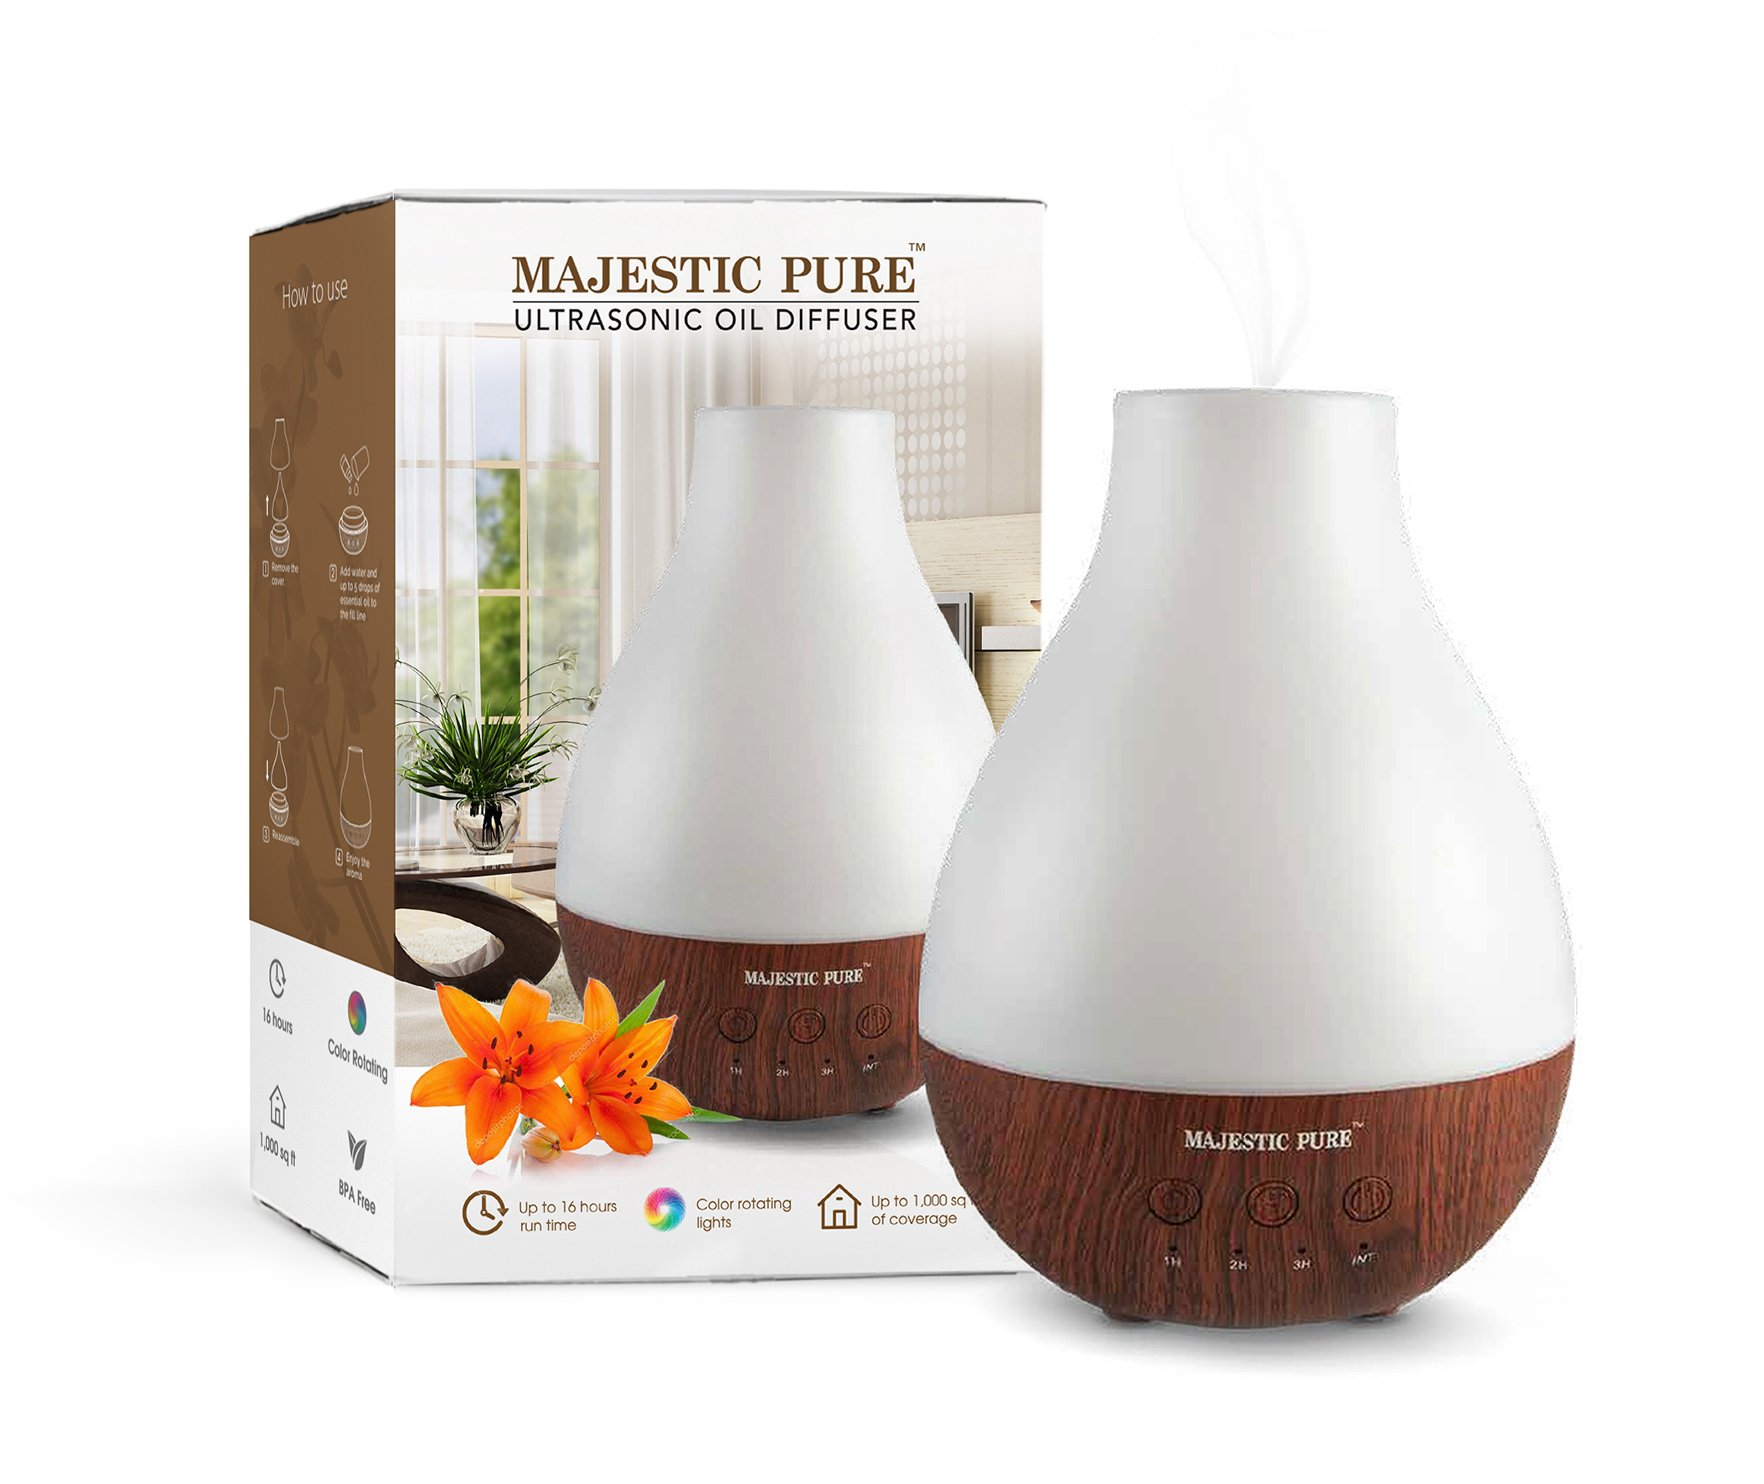 MAJESTIC PURE Essential Oil Diffuser - Advanced Aroma Diffuser with Strong Mist Output - Best Ultrasonic, Wider Area, Cool Mist Humidifier, Longer Run Times, BPA Safe and Automatic Safety Features